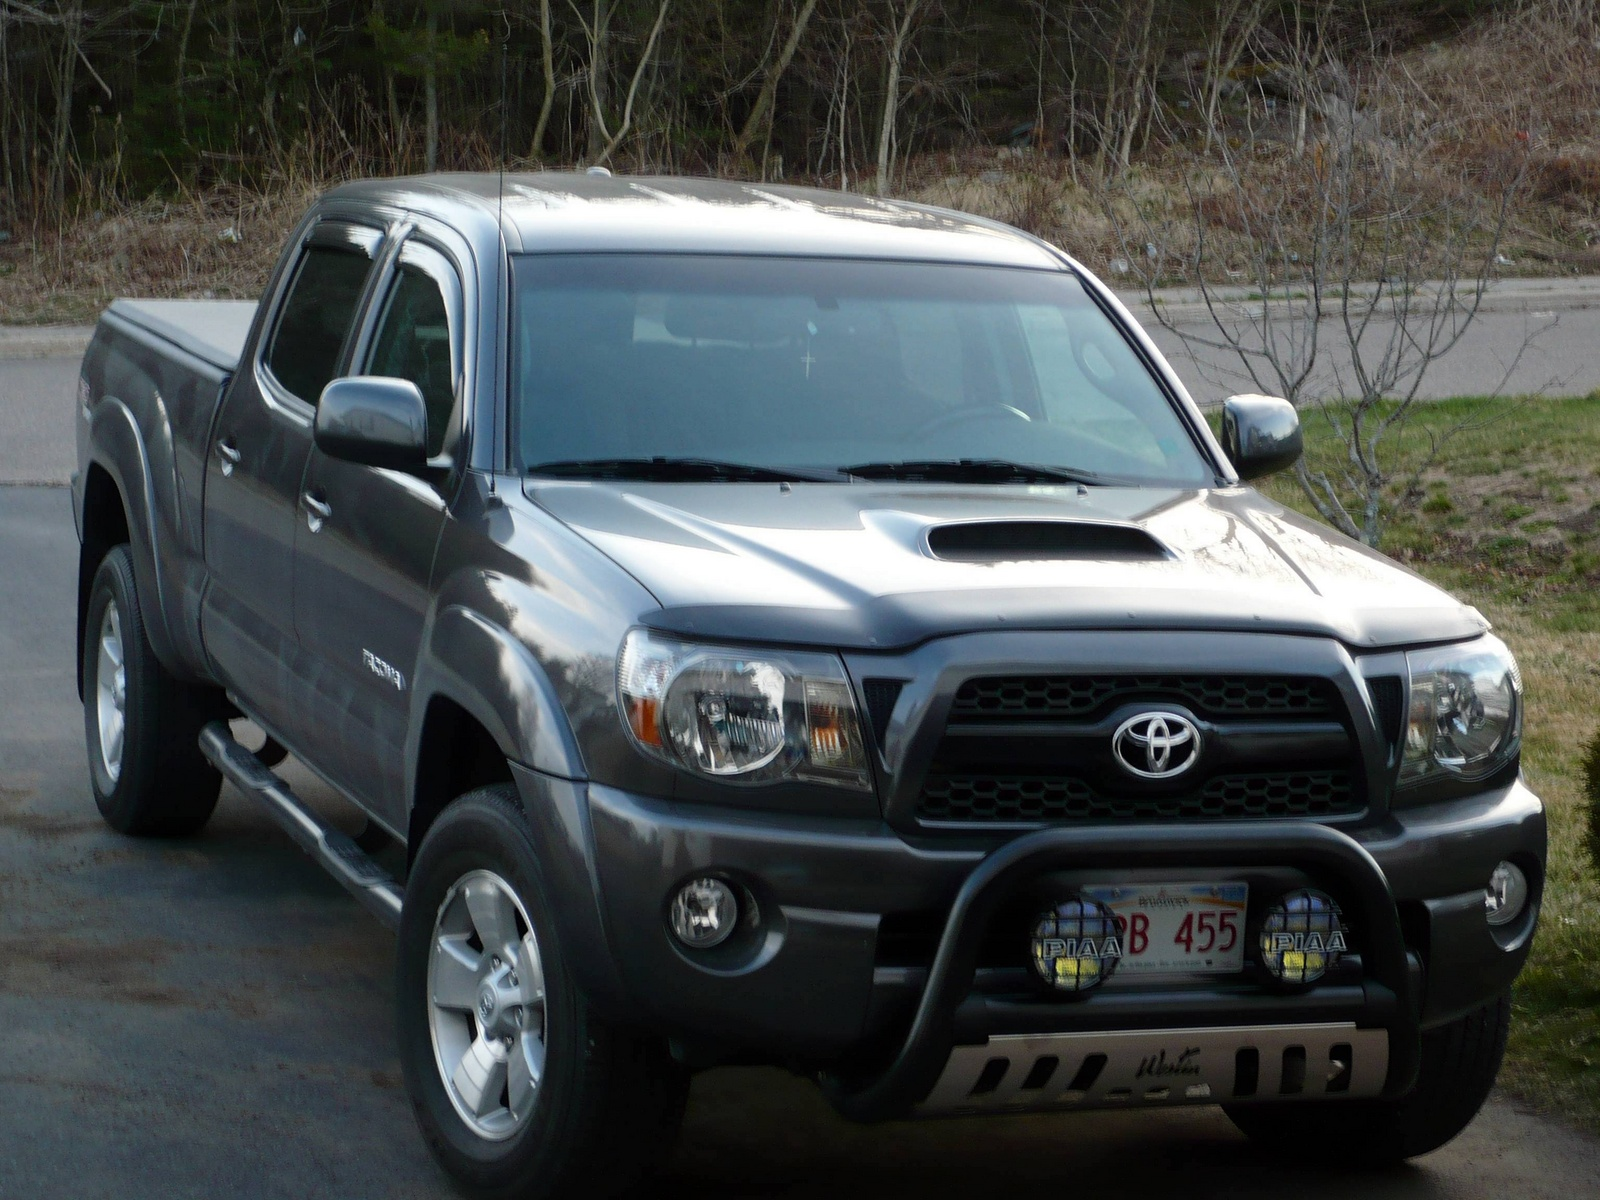 2011 toyota tacoma double cab mpg. Black Bedroom Furniture Sets. Home Design Ideas